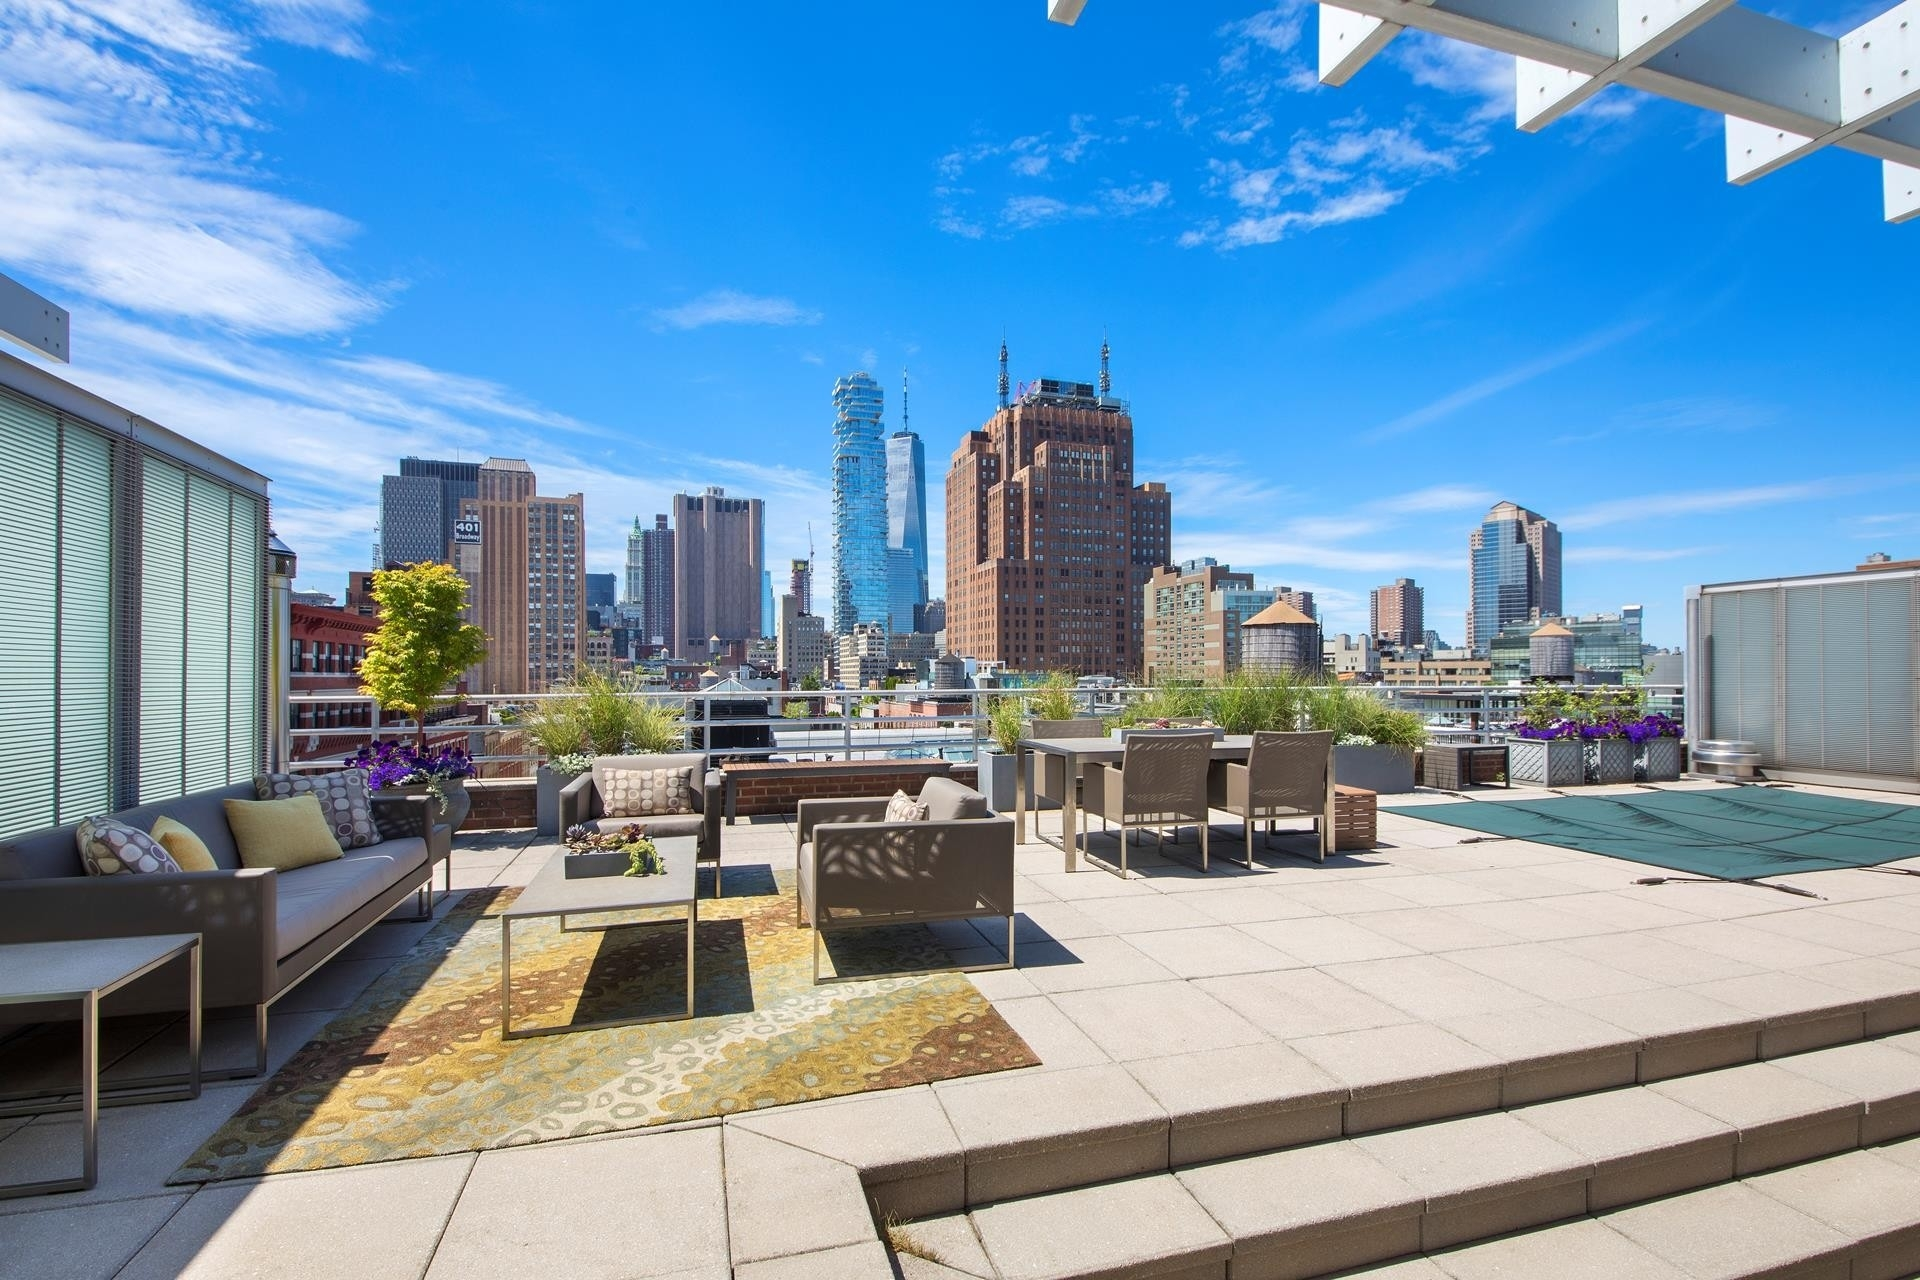 Property at The Grand Mercer, 47 Mercer St, PH SoHo, New York, NY 10013